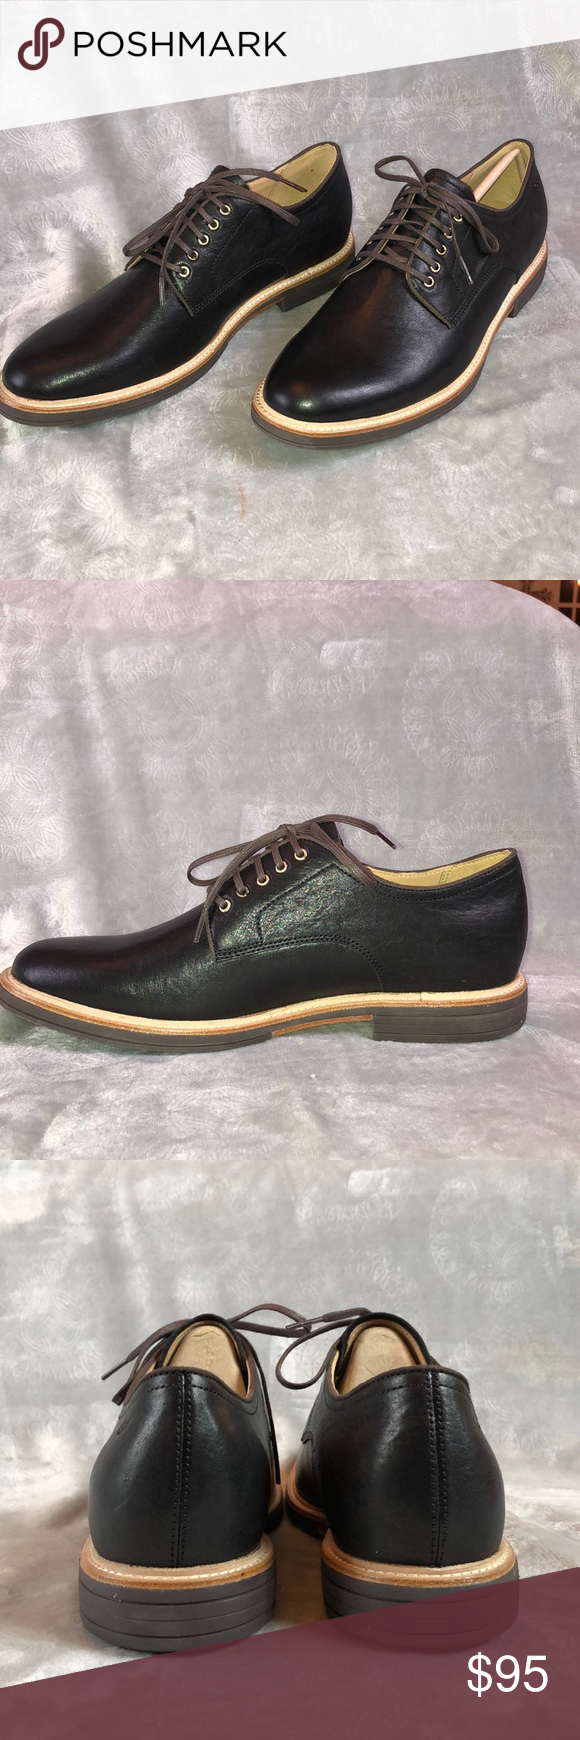 ec950867282 UGG Men's JOVIN Leather OXFORD Brand new NWT 🥰 never worn Style ...